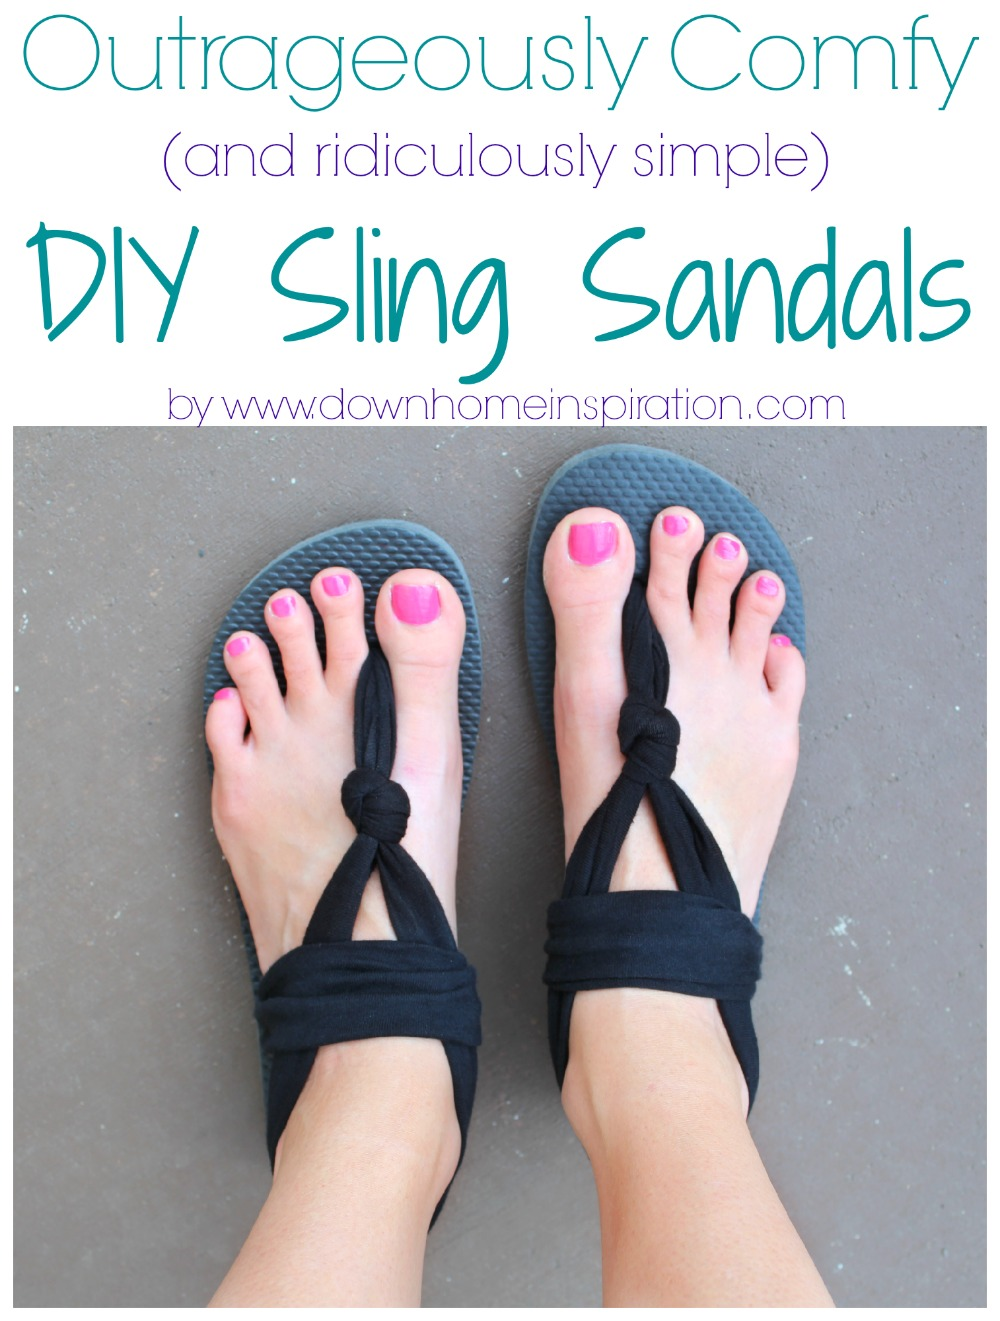 Outrageously Comfy And Ridiculously Simple Diy Sling